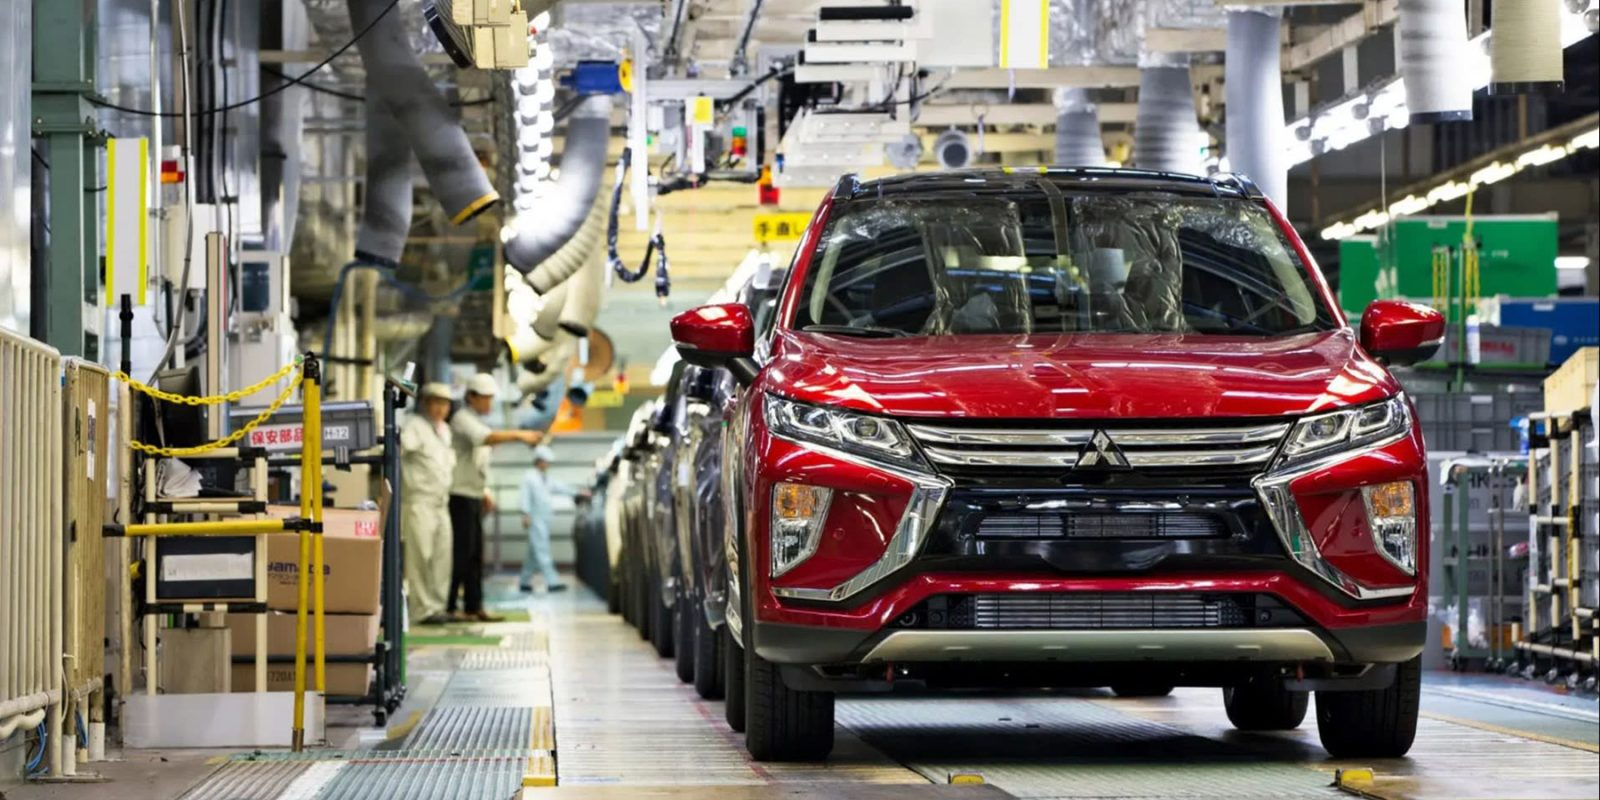 Used EV batteries will power Mitsubishi's electric-vehicle manufacturing plant